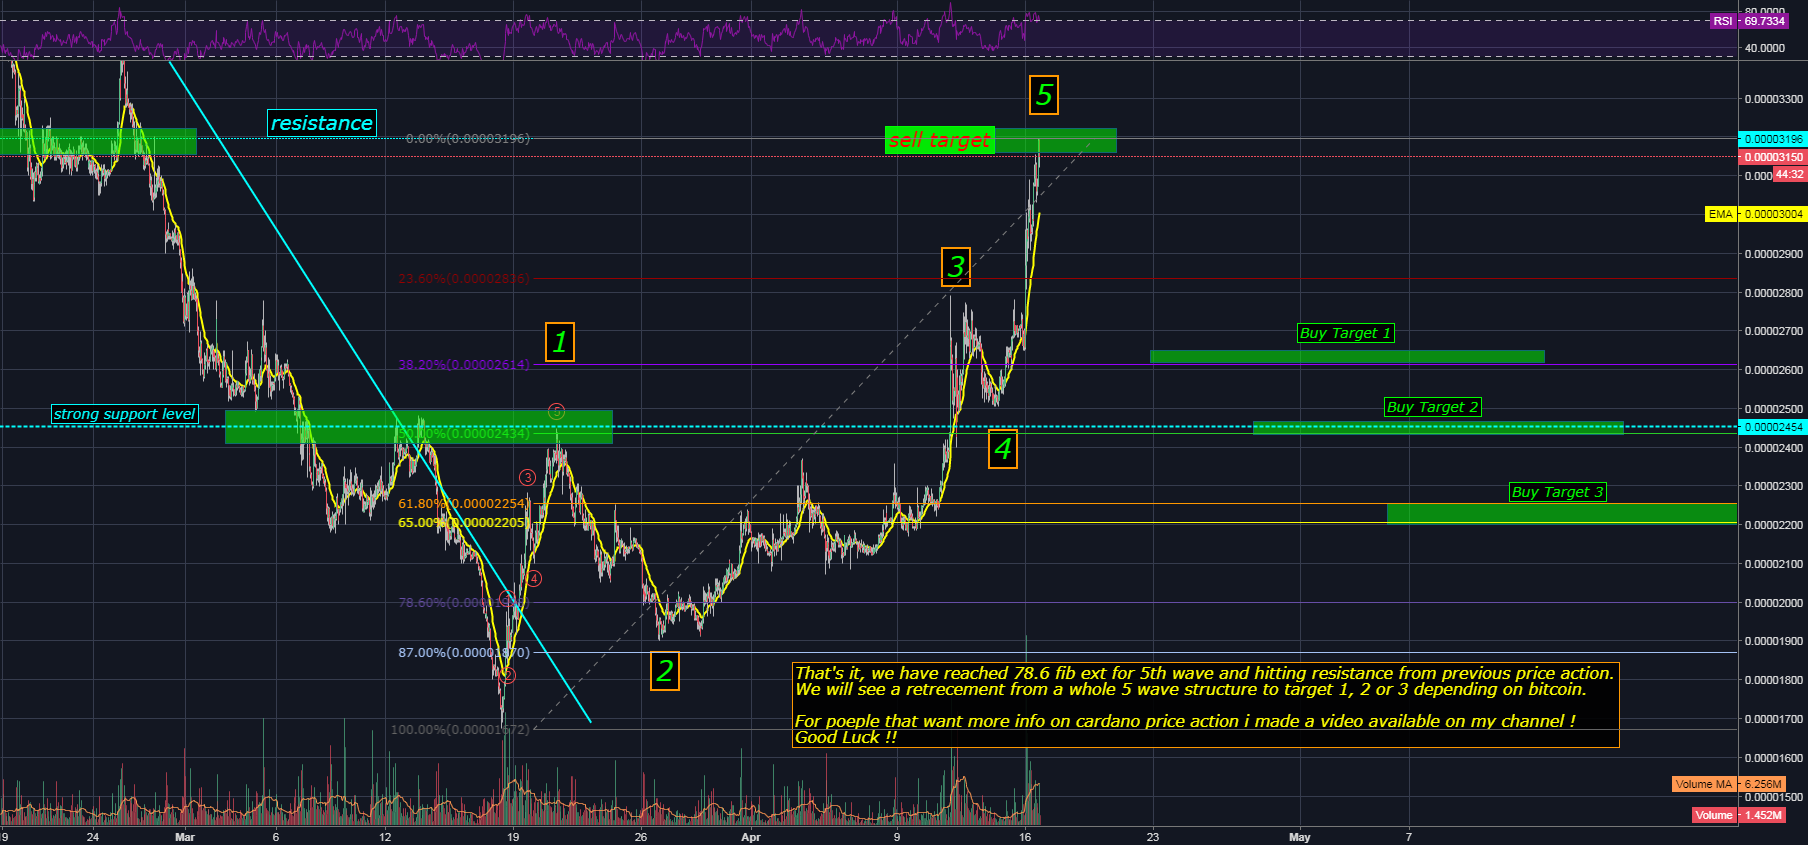 ADA/BTC CARDANO PRICE ANALYSIS / HAVE WE FINISHED 5TH WAVE ??